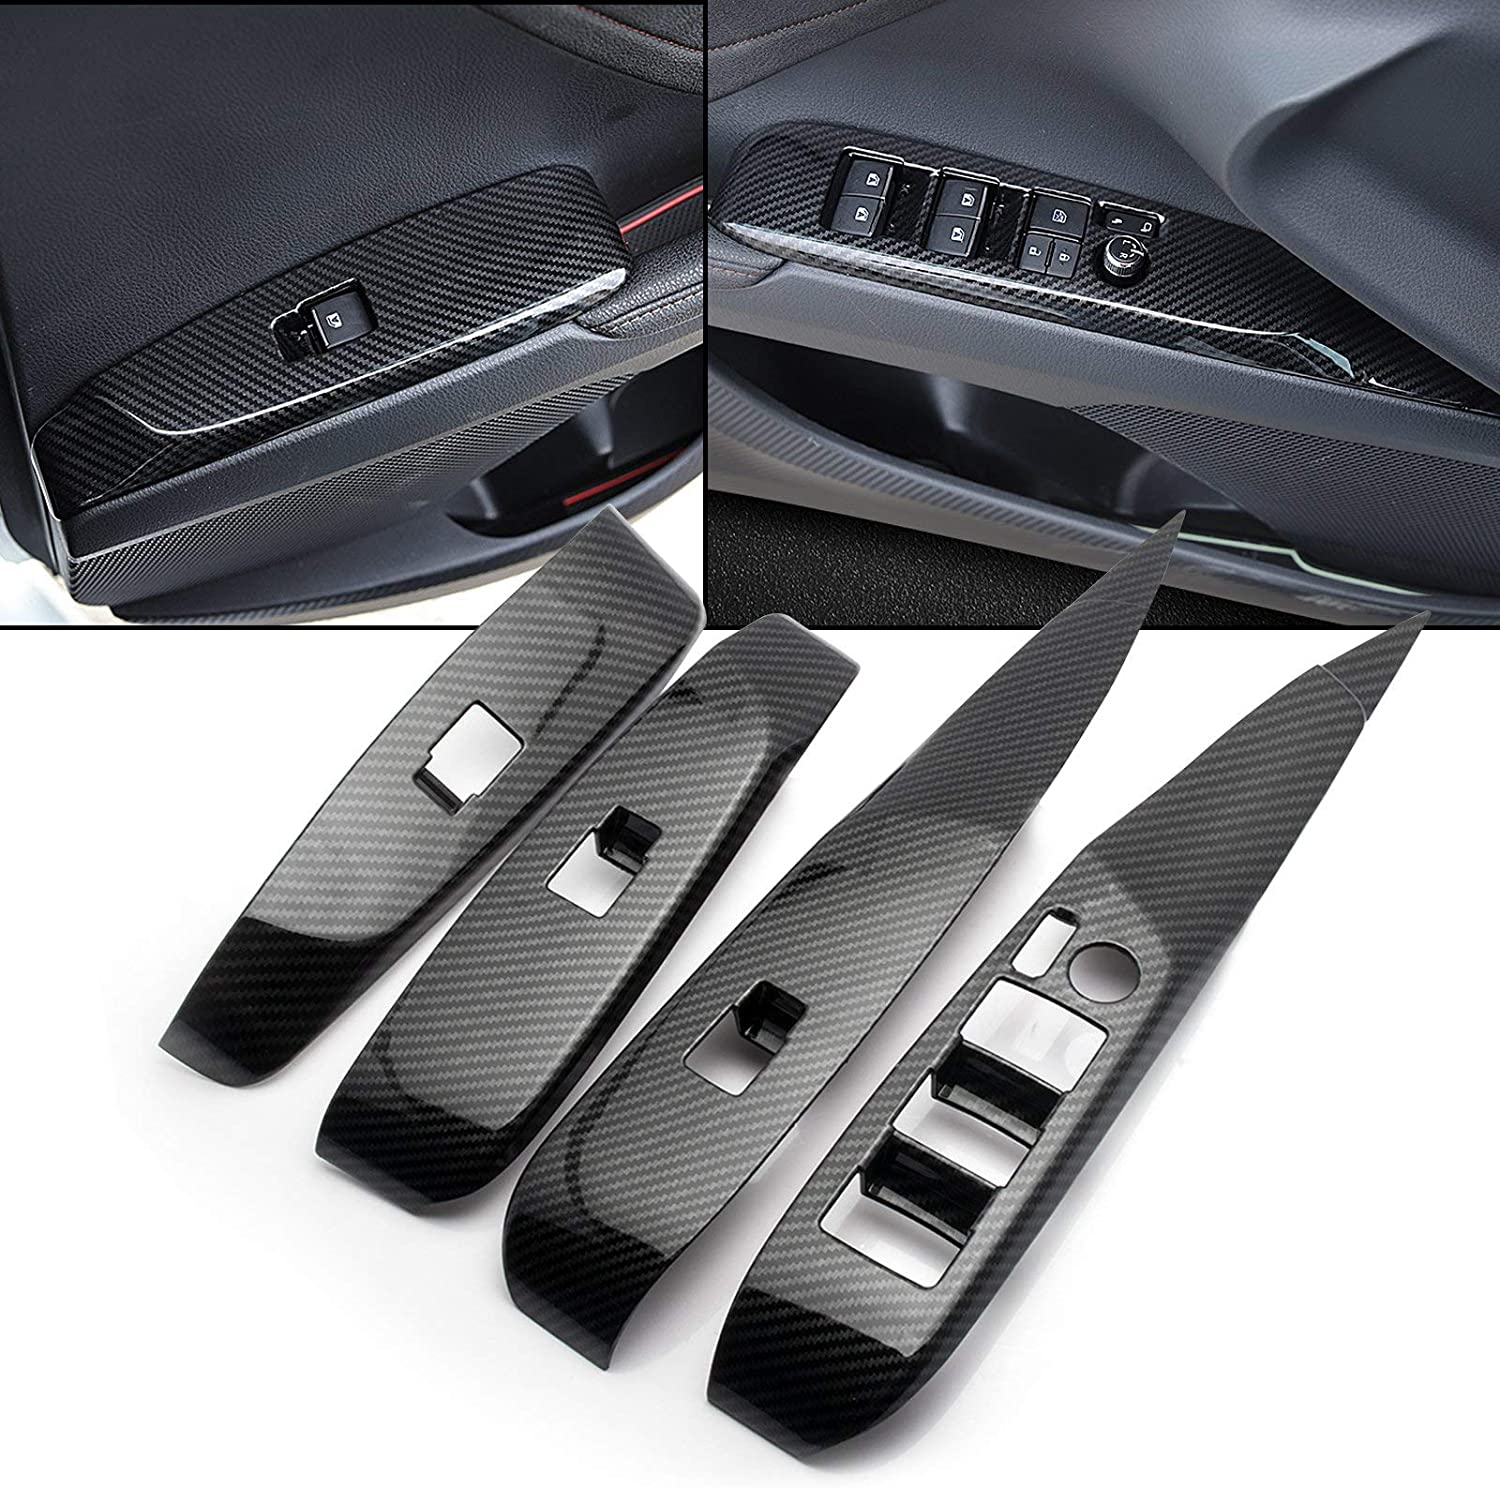 CKE Inner Door Handle Decoration Cover Stainless Steel Door Bowl Trim Sticker For Toyota Camry 2018 2019 2020 - Blue(4pcs